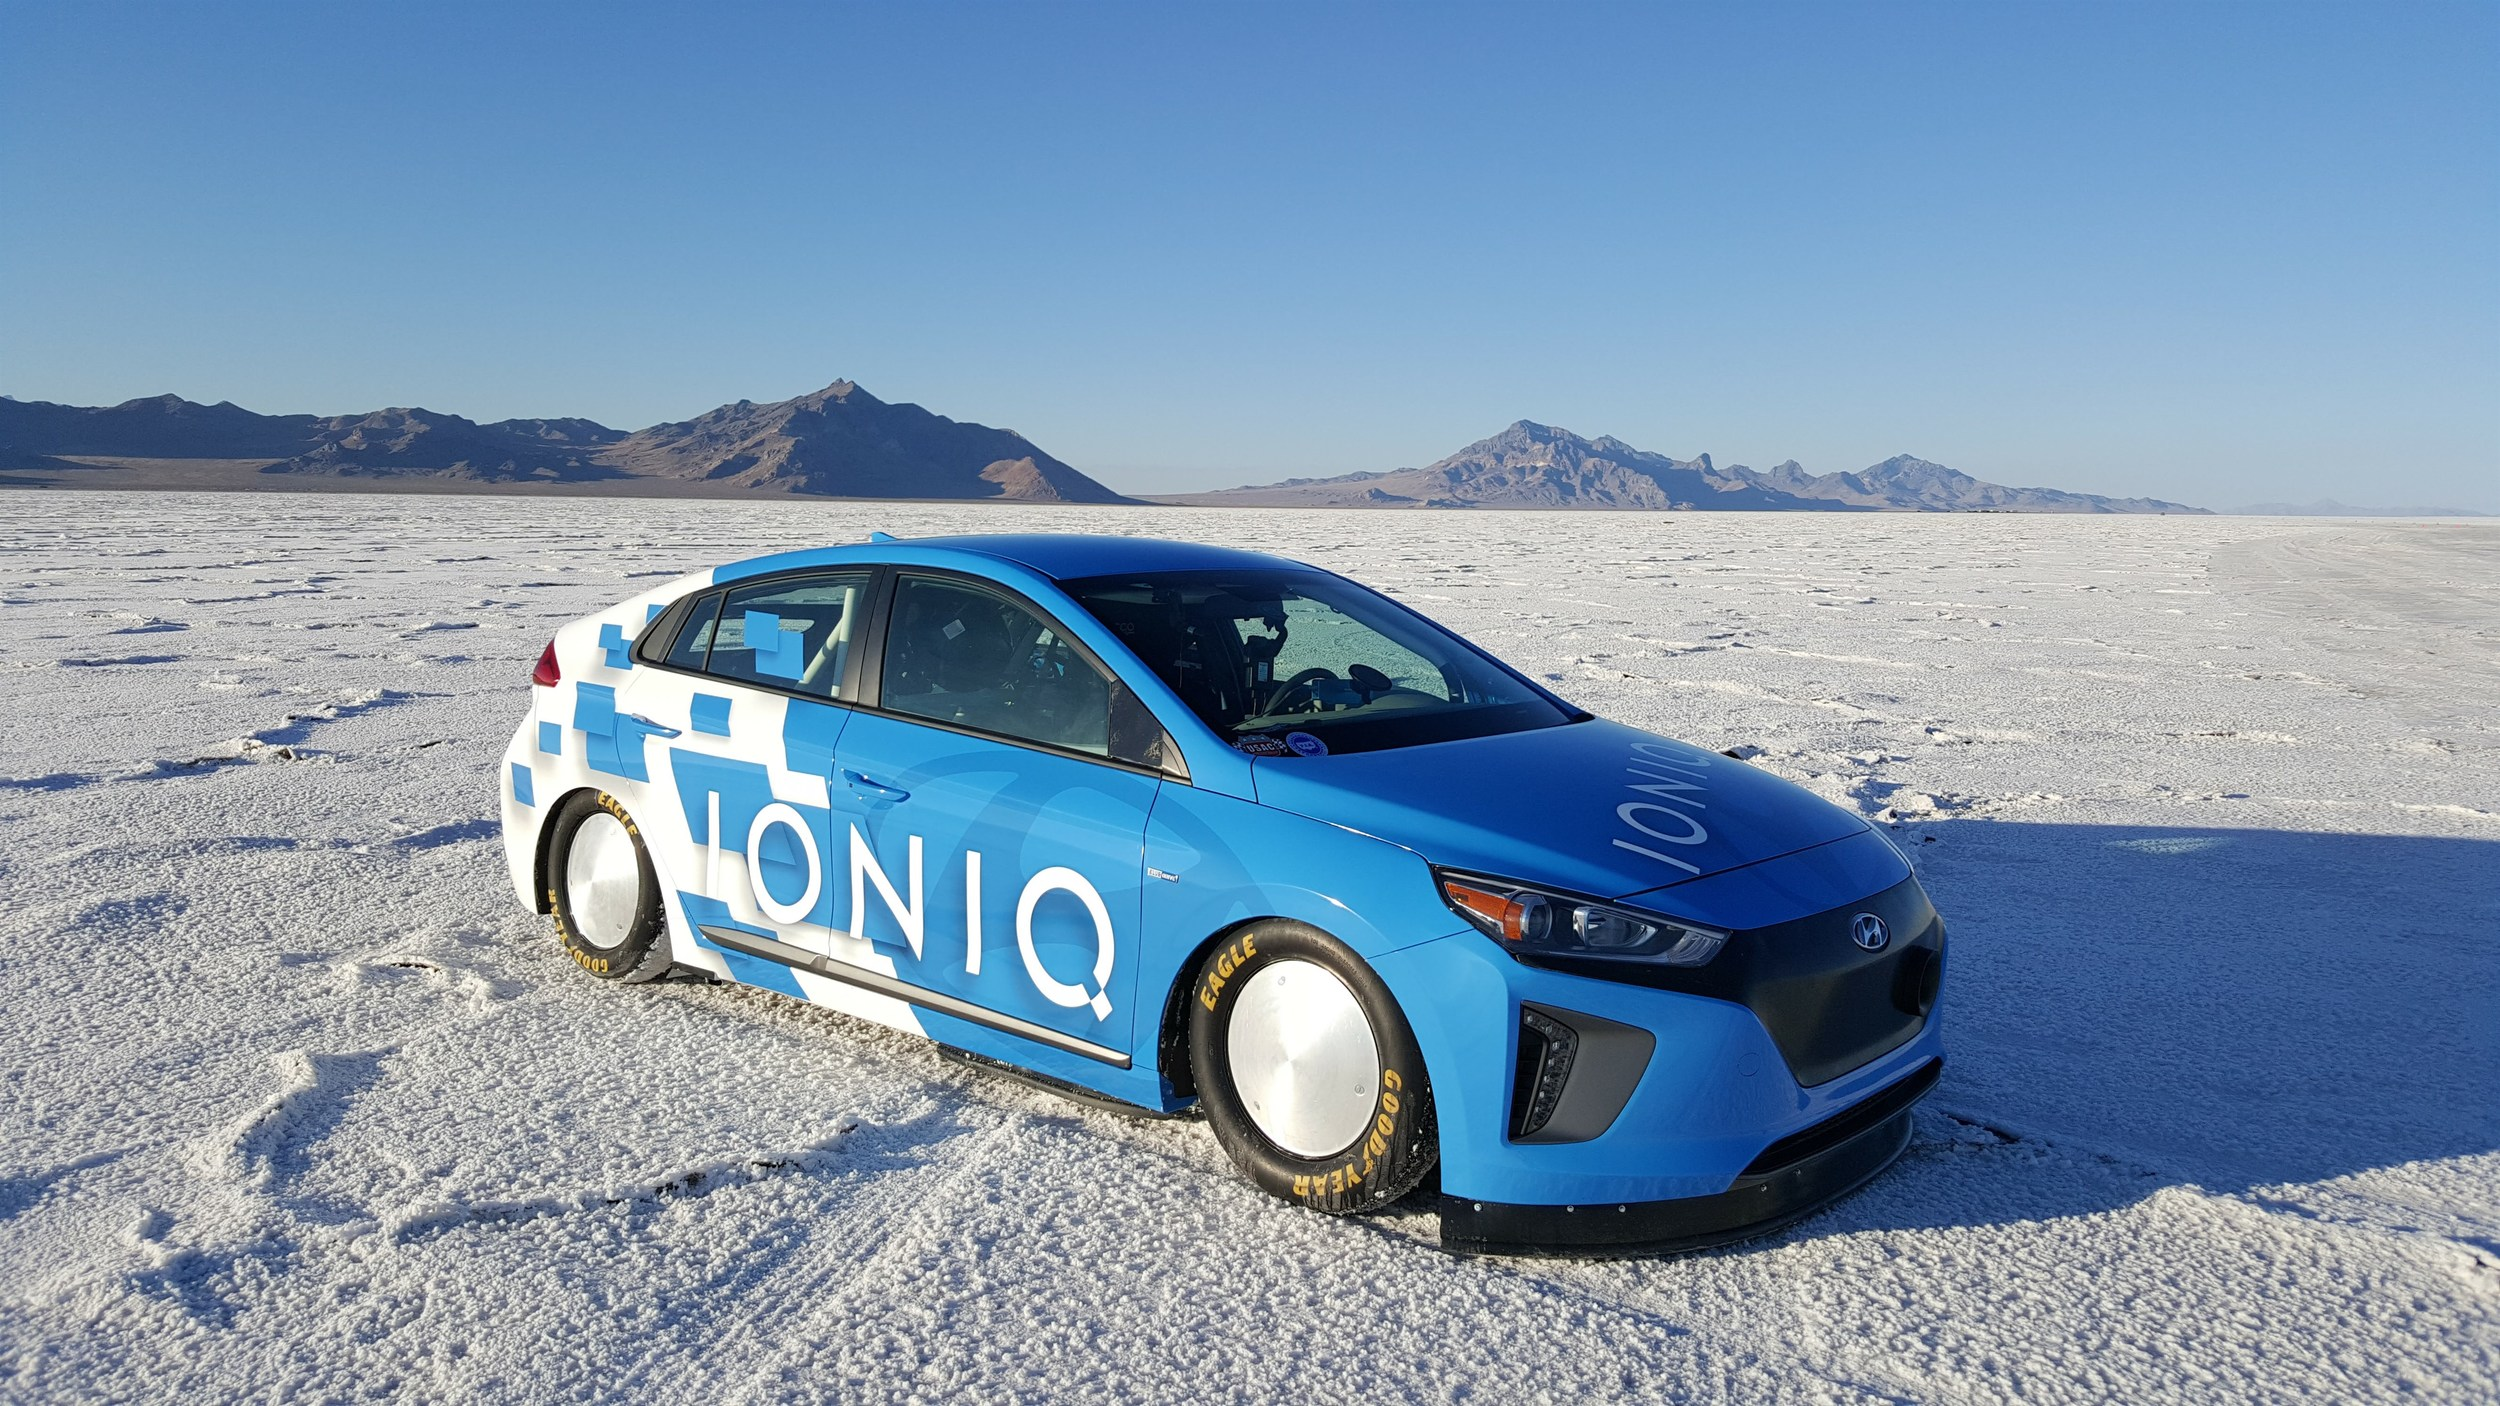 46444-ioniq-land-speed-record-car-1